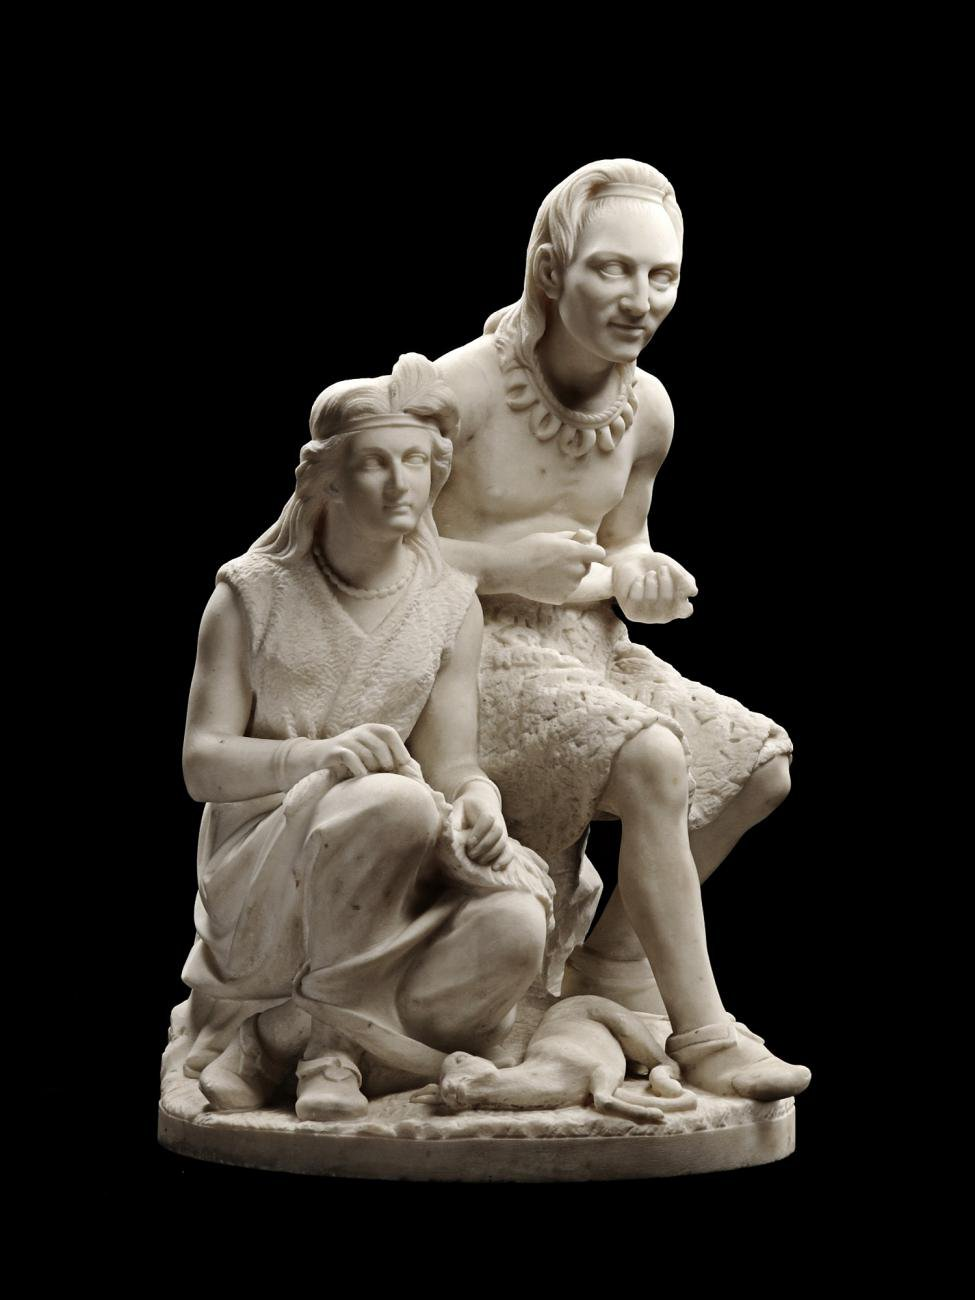 A white marble sculpture of a Native American man and woman sitting